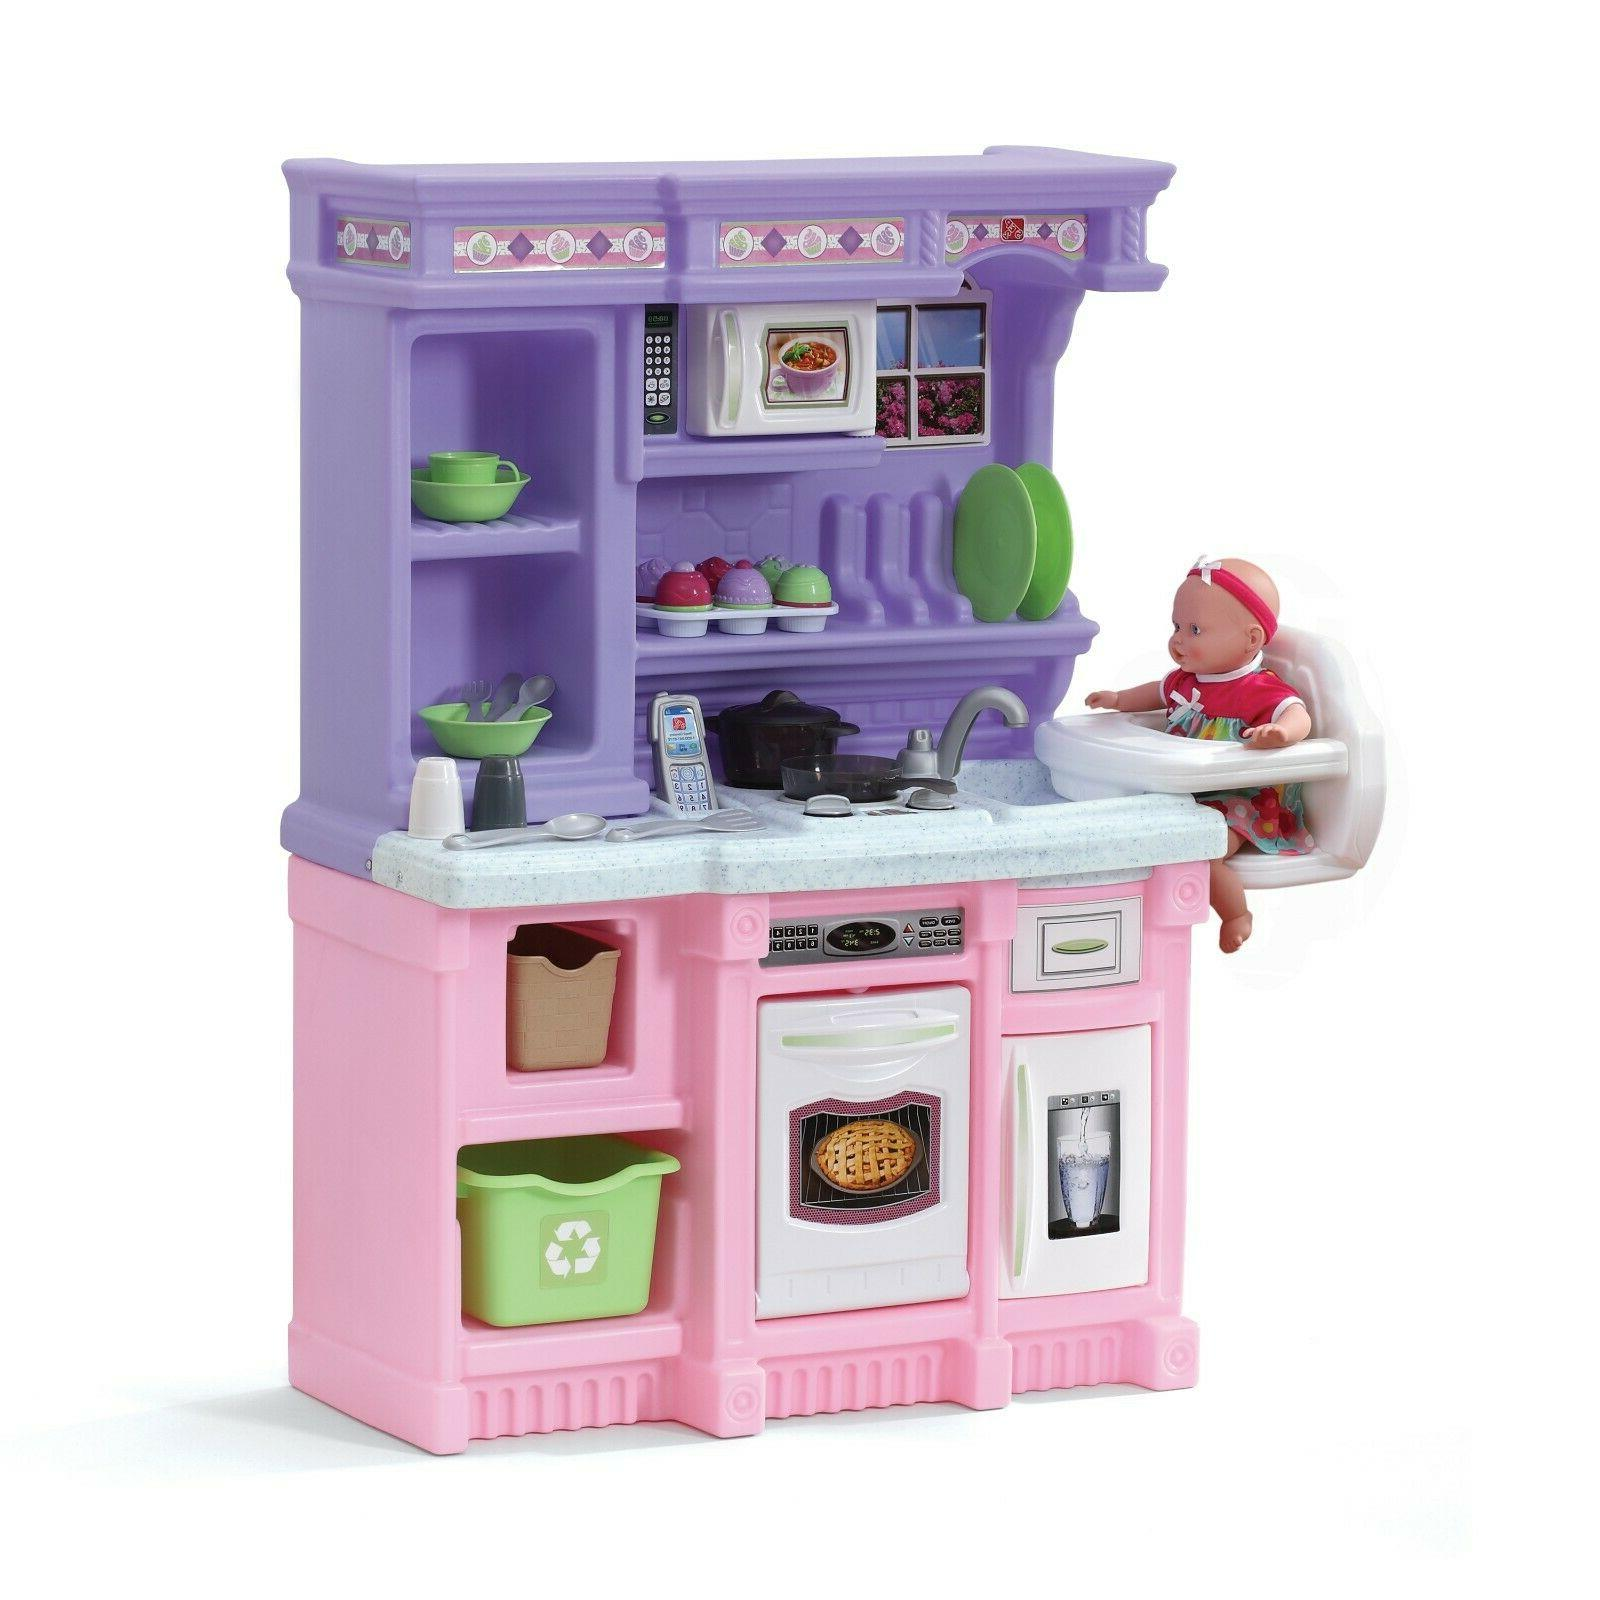 Kitchen Baker Toy Cooking Playset Gift Present